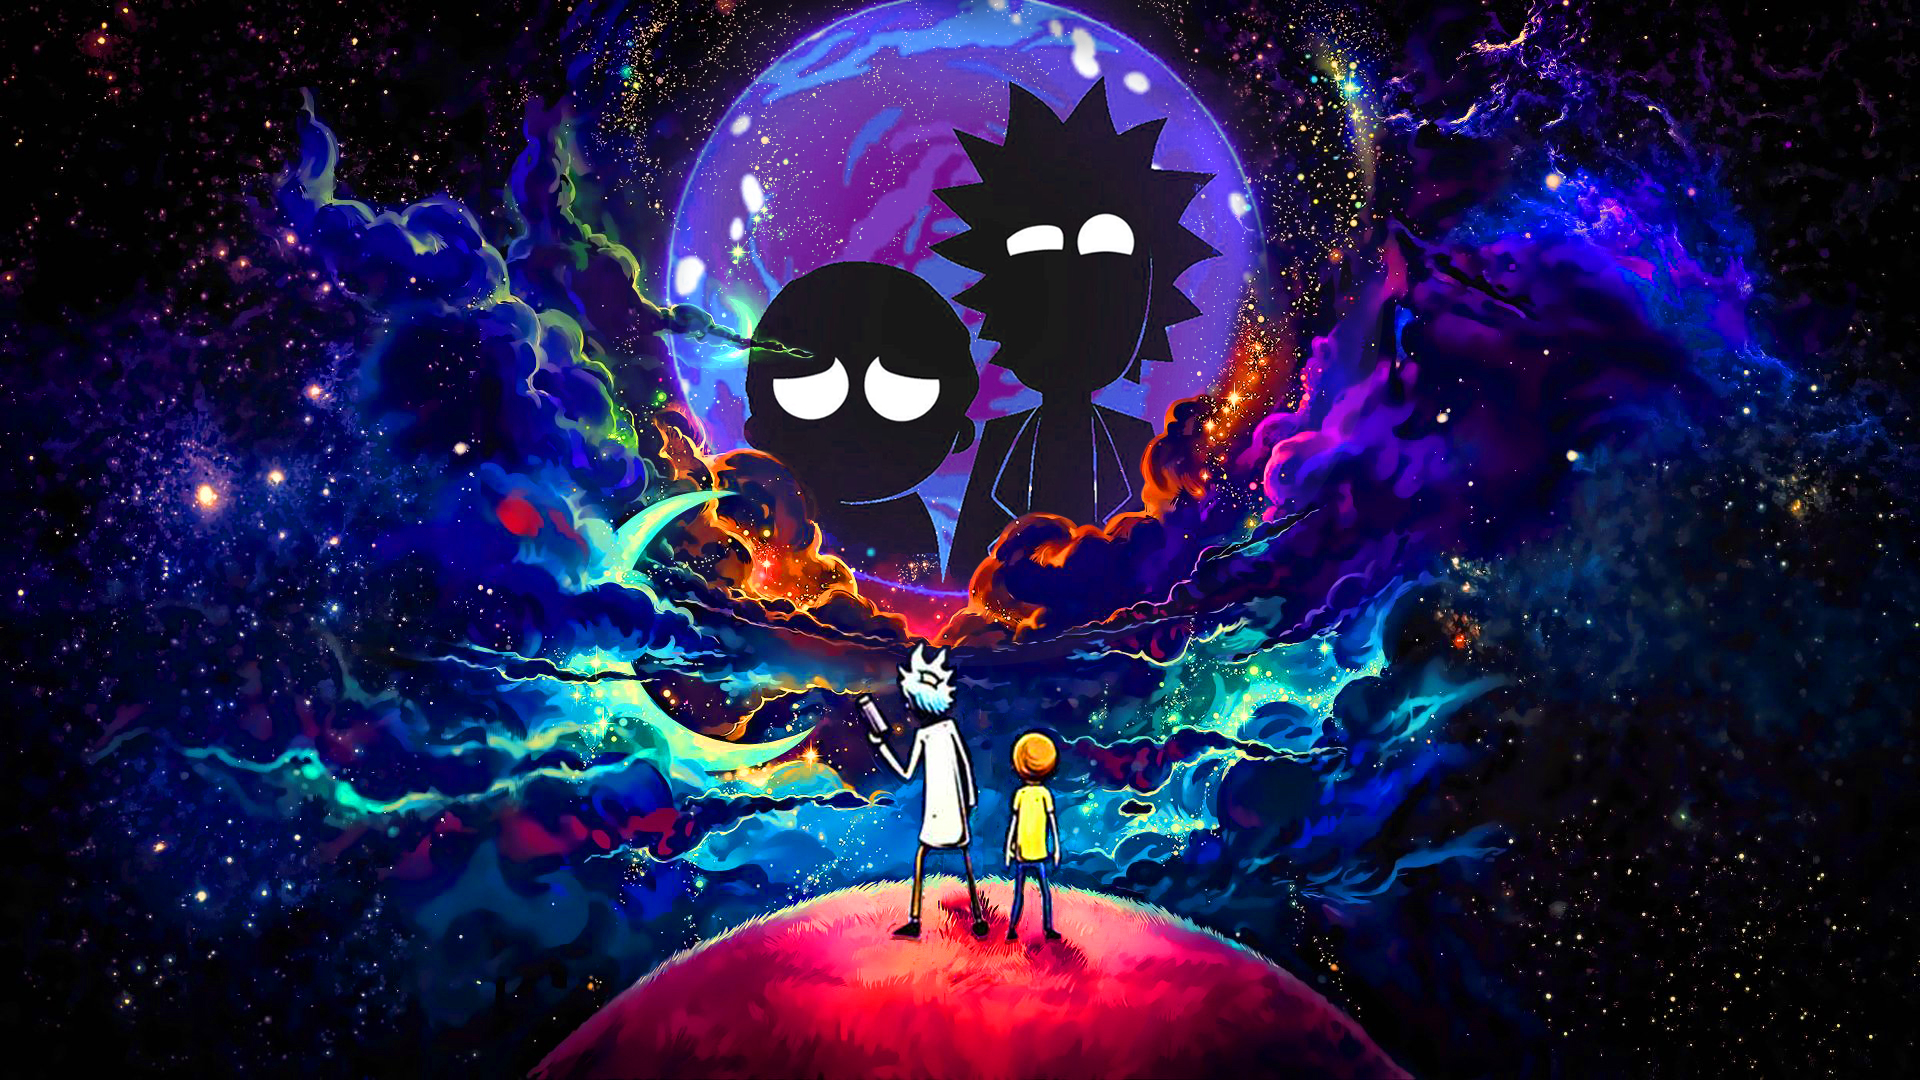 Rick and Morty in Outer Space Wallpaper, HD TV Series 4K ...